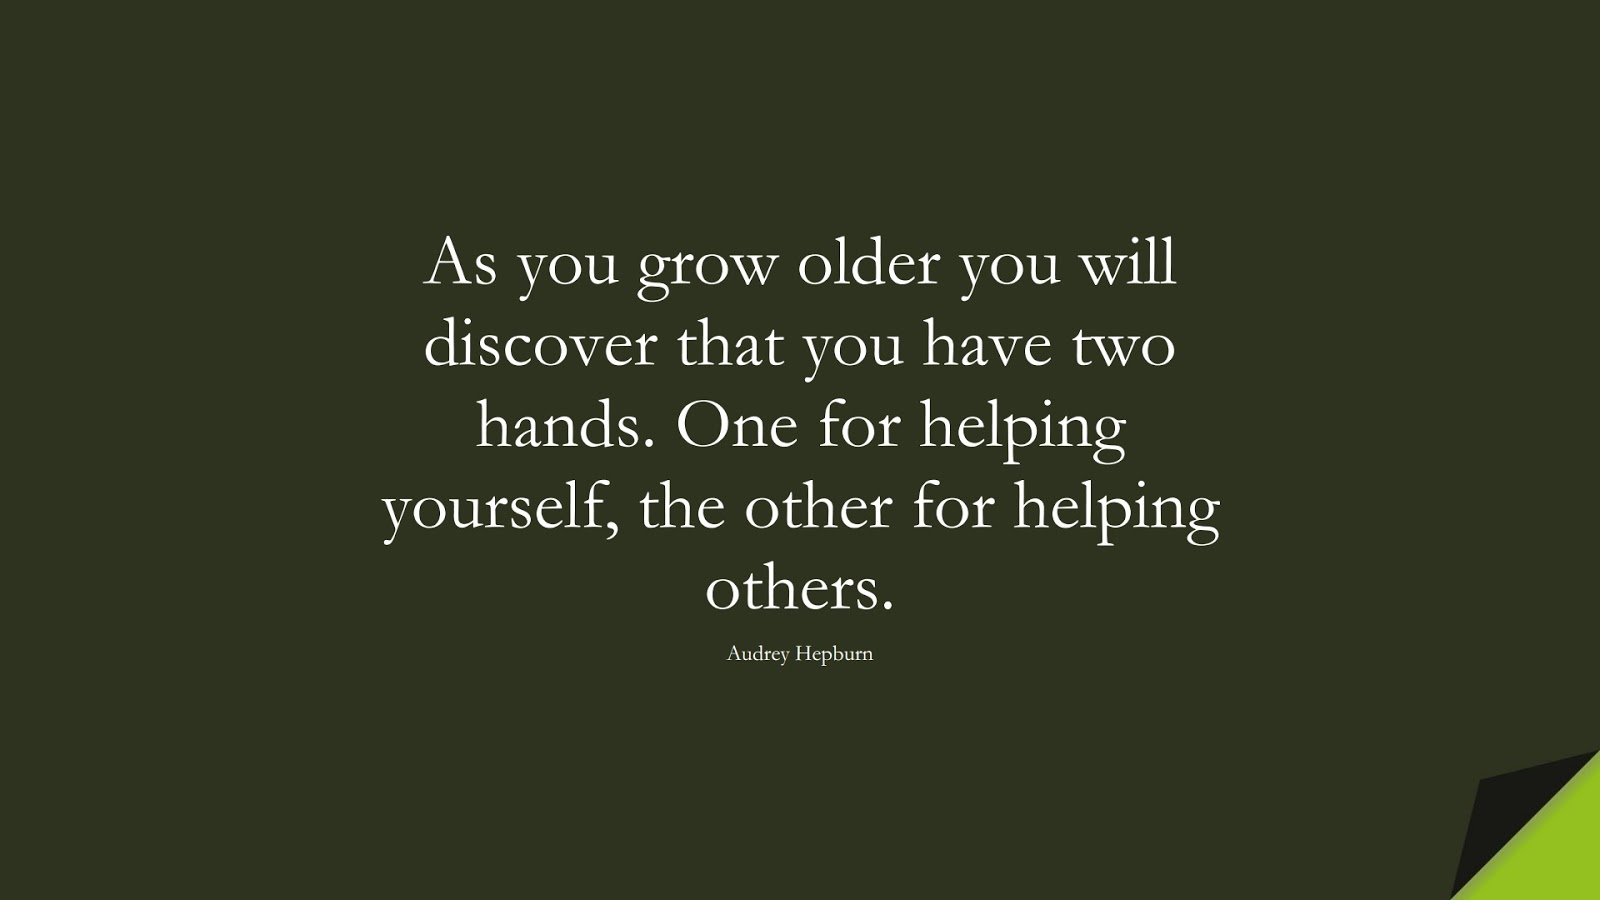 As you grow older you will discover that you have two hands. One for helping yourself, the other for helping others. (Audrey Hepburn);  #ChangeQuotes